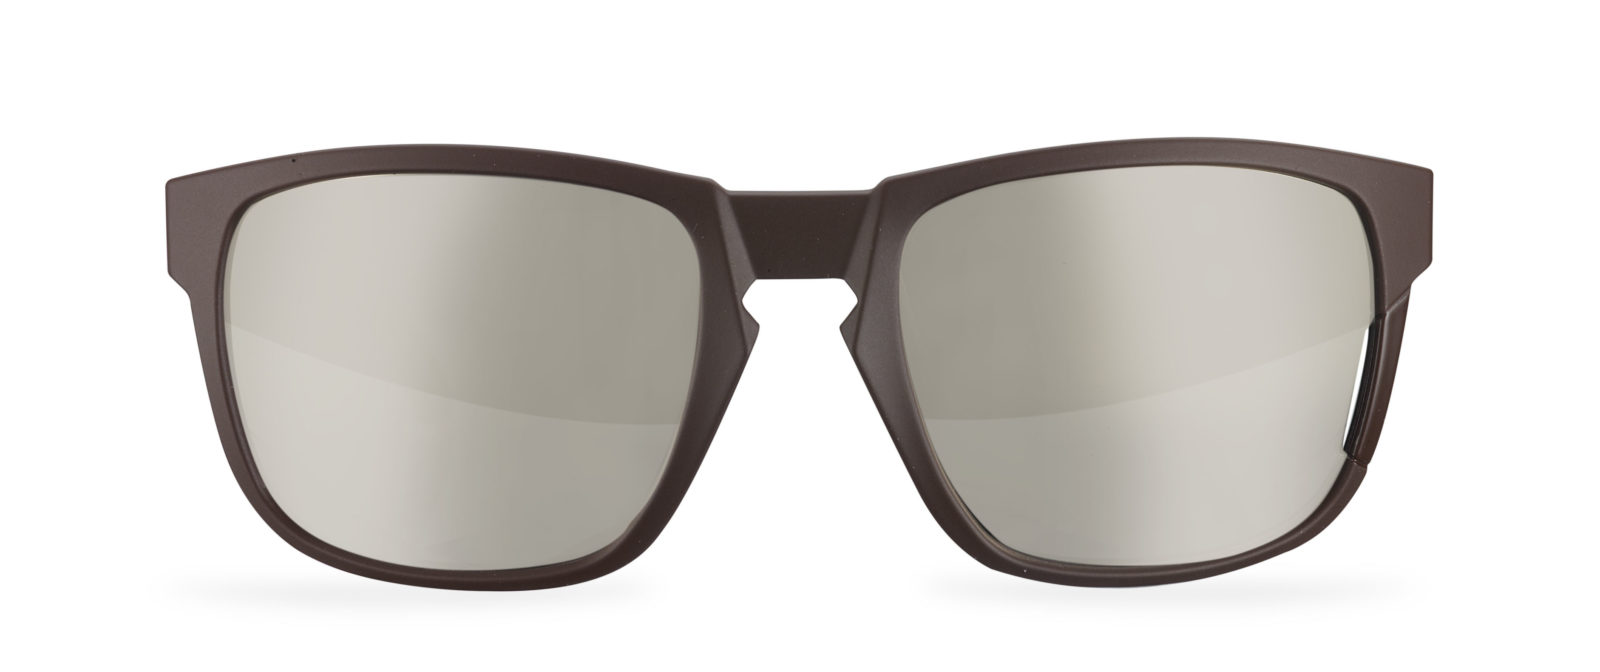 Brýle KOO CALIFORNIA CHOCOLATE MATT super ivory lenses